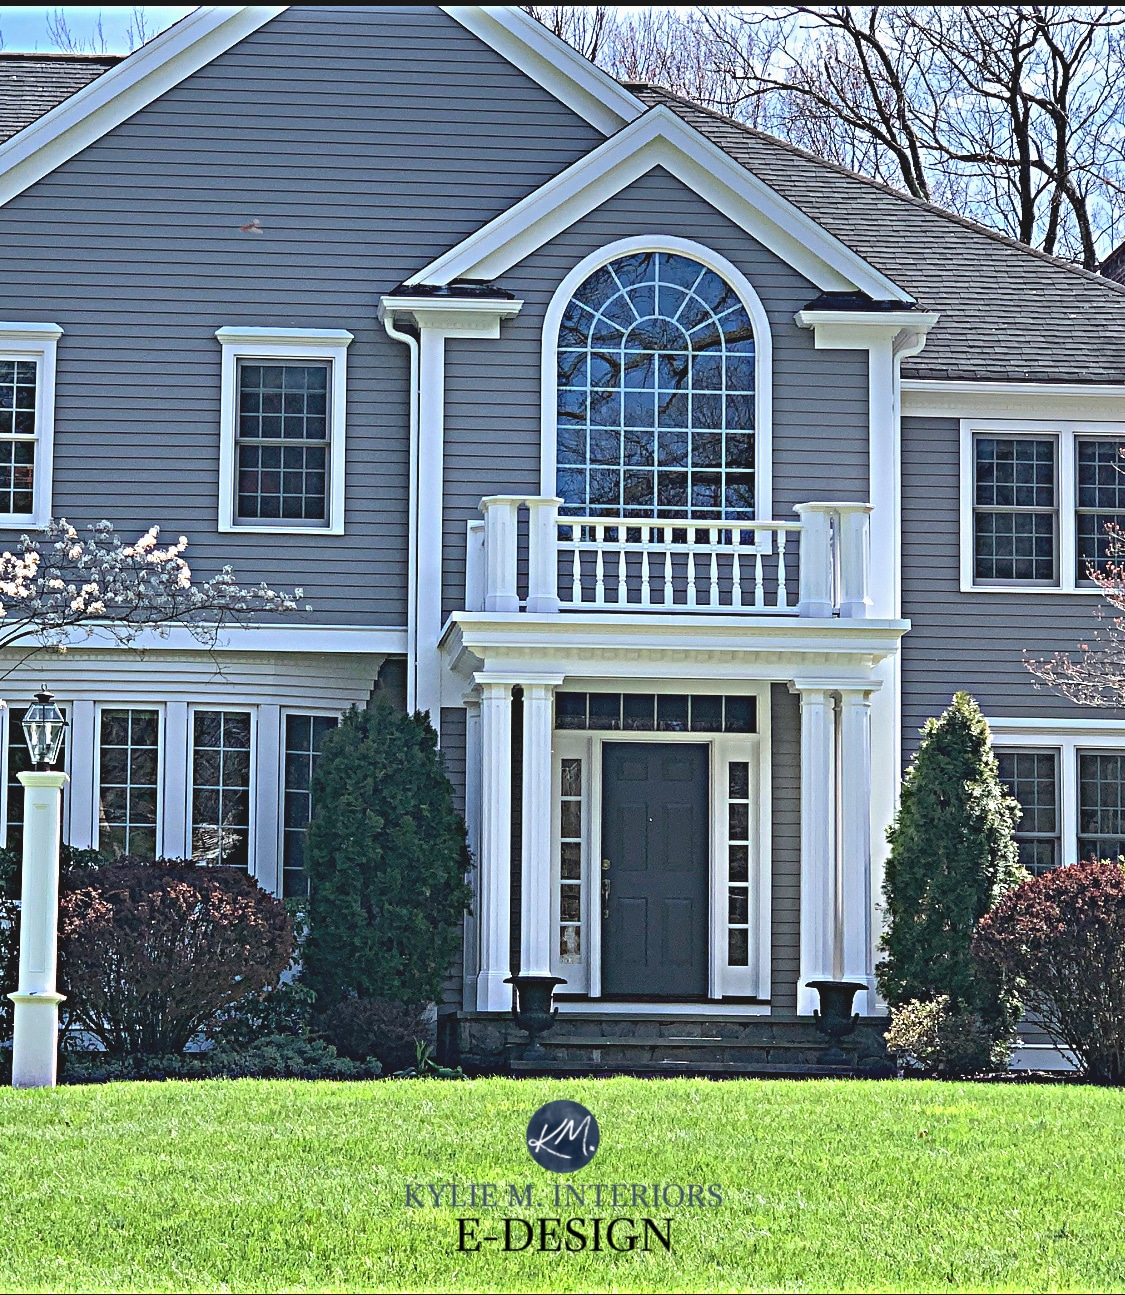 Exterior Painted Warm Gray Benjamin Moore Graystone White Trim Dark Front Door Exterior Edesign Virtual Paint Color Consult By Kylie M Interiors Colour Expert